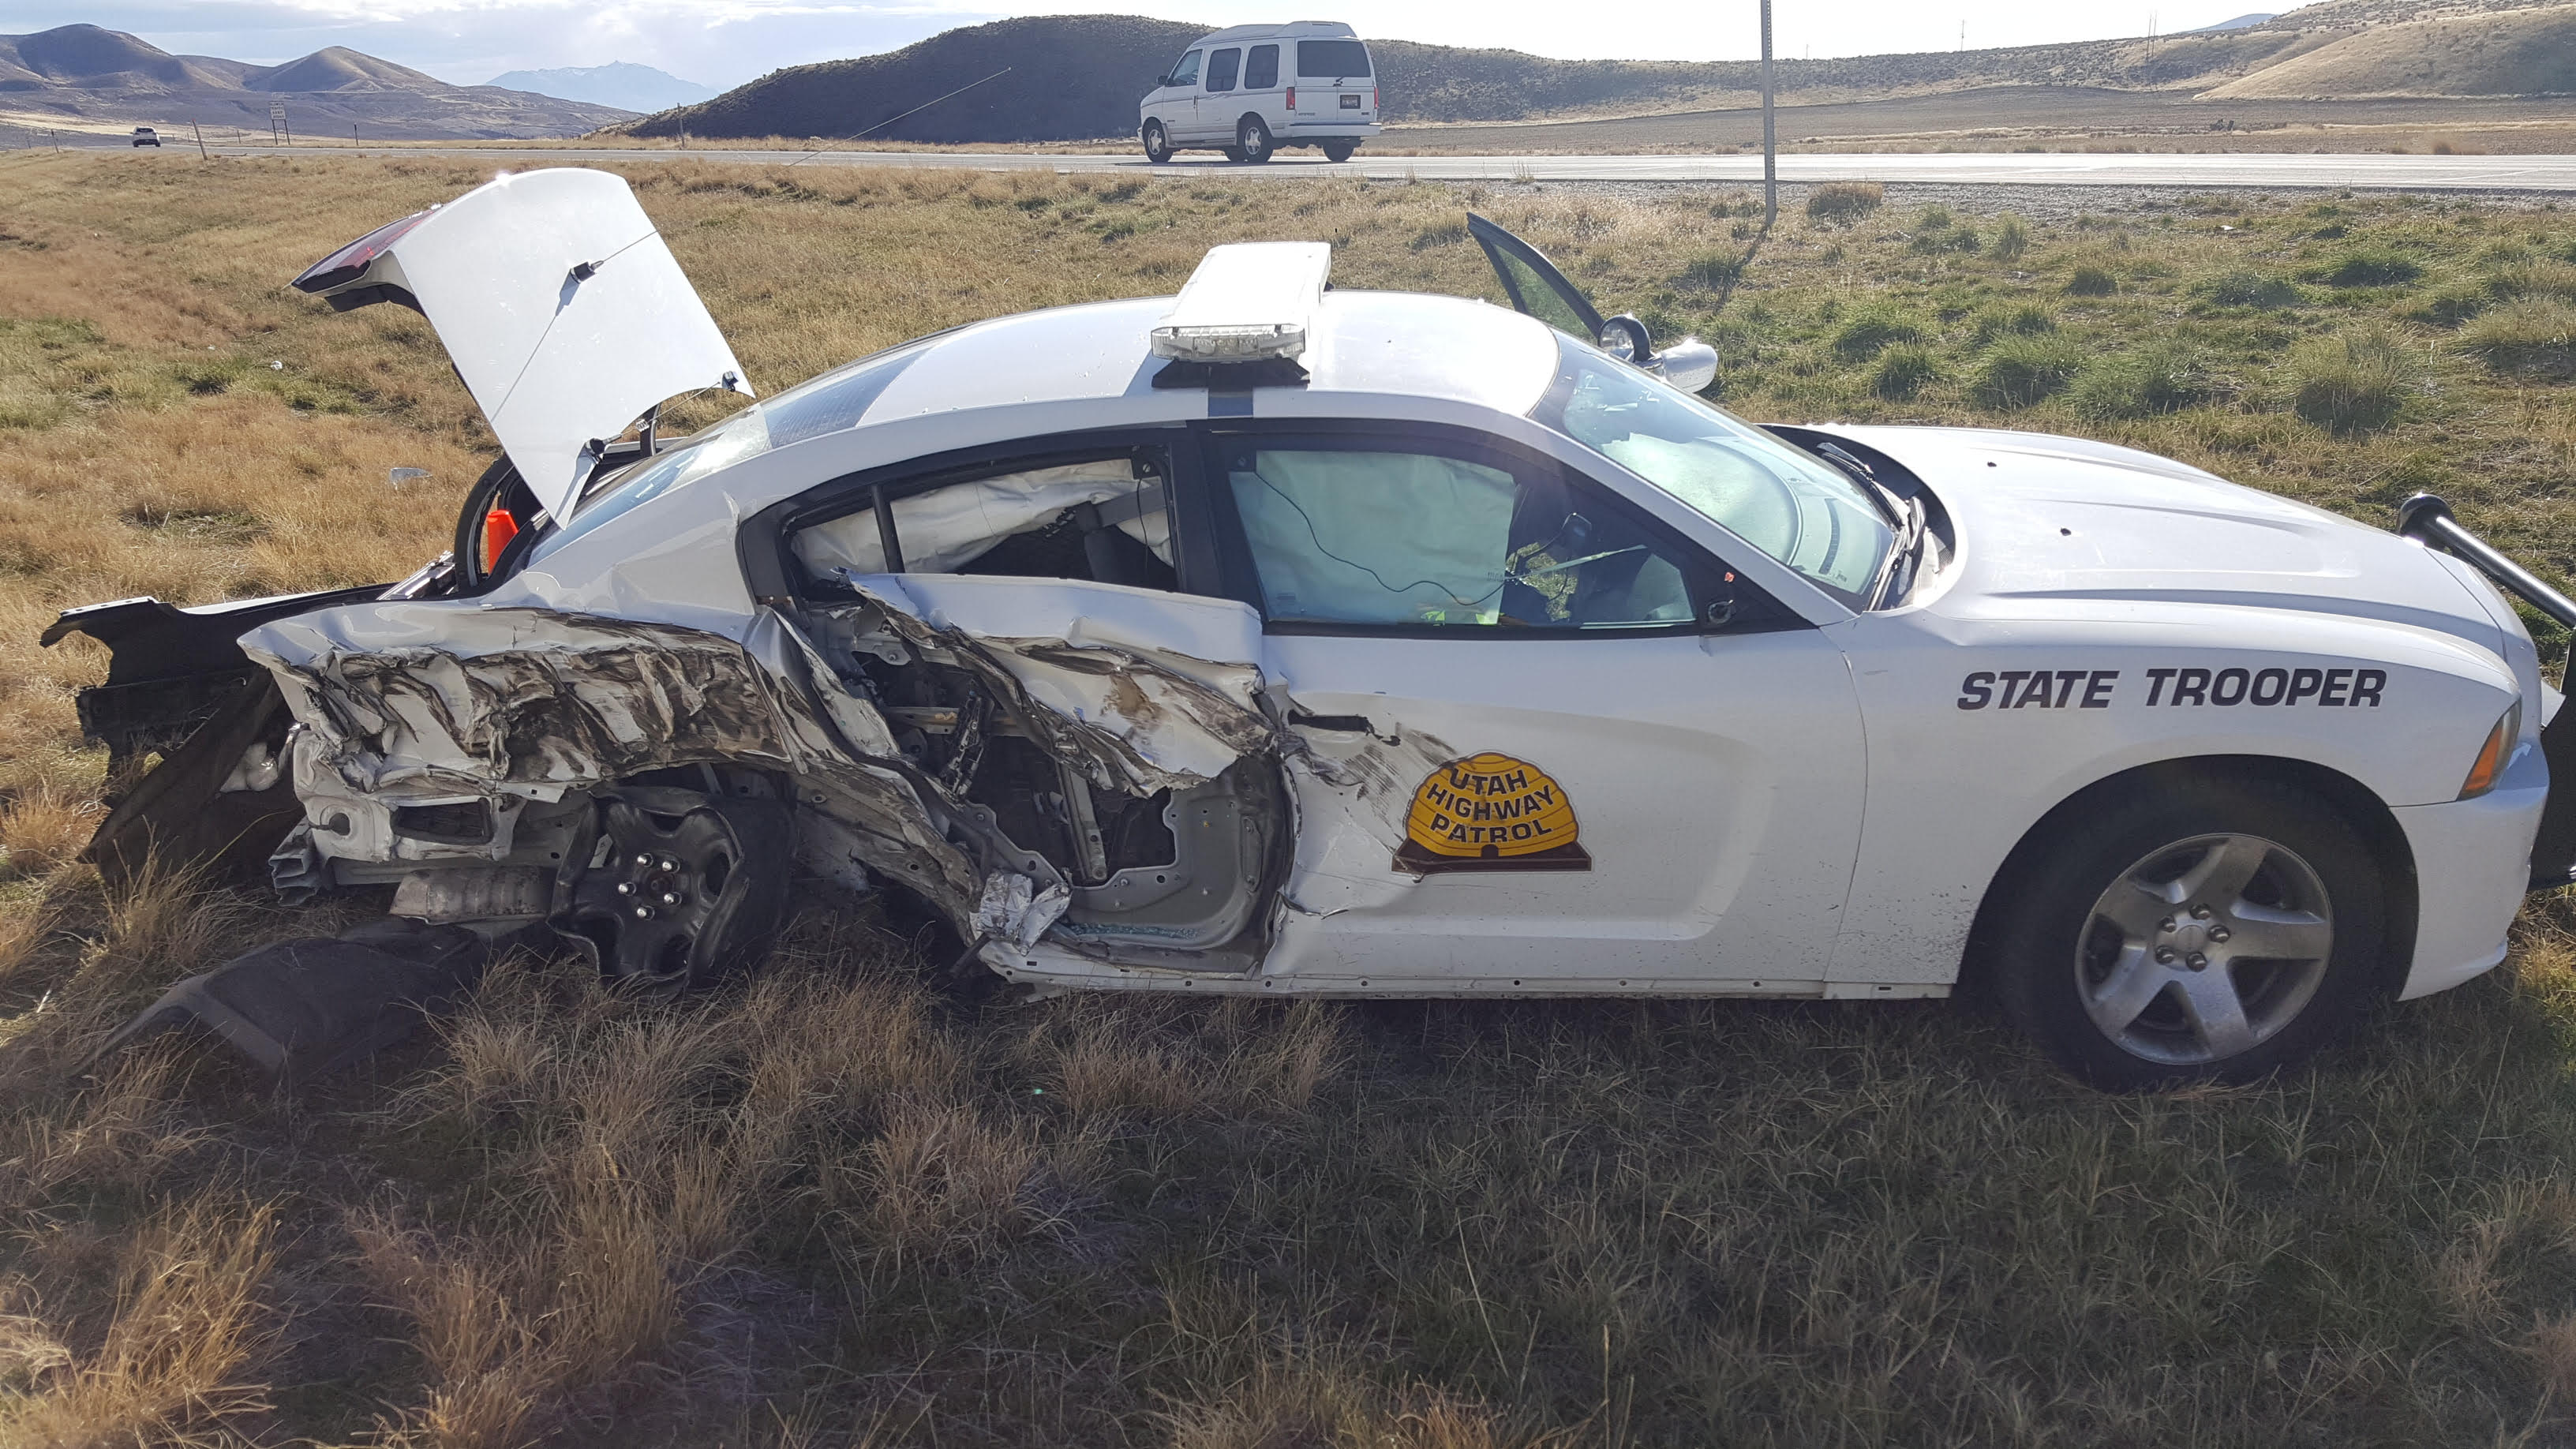 Highway Patrol: Trooper struck by vehicle, critically injured